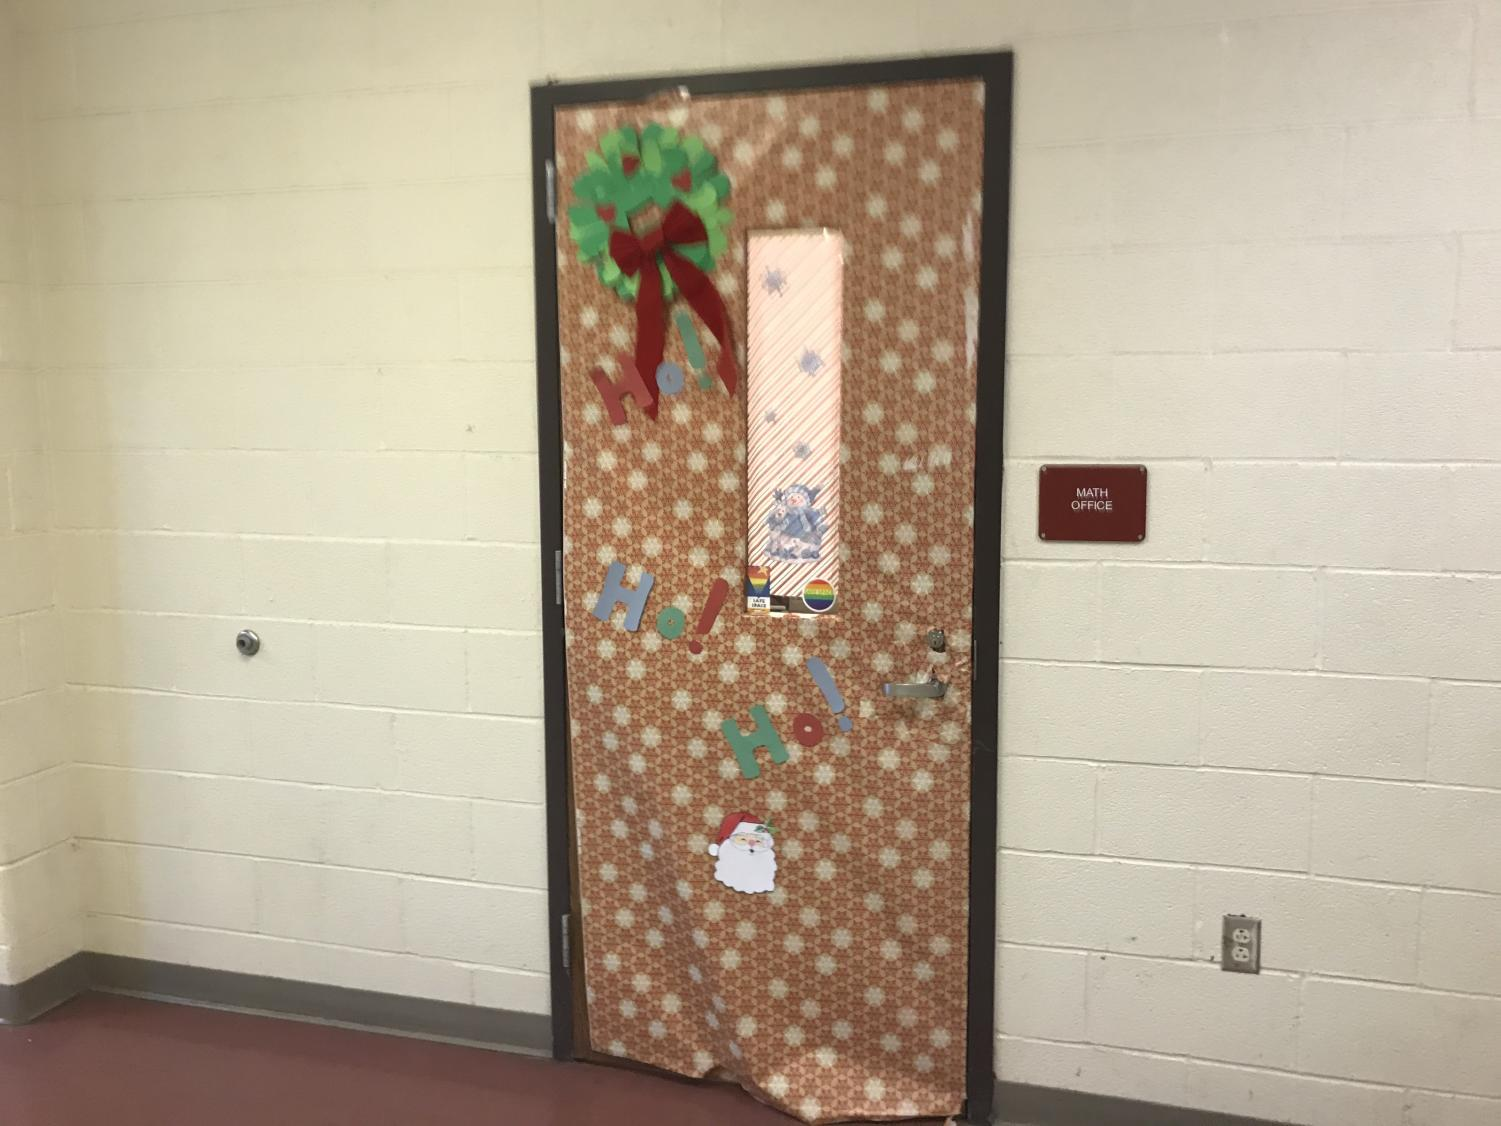 The+Math+Office+door%2C+decorated+with+a+wreath.